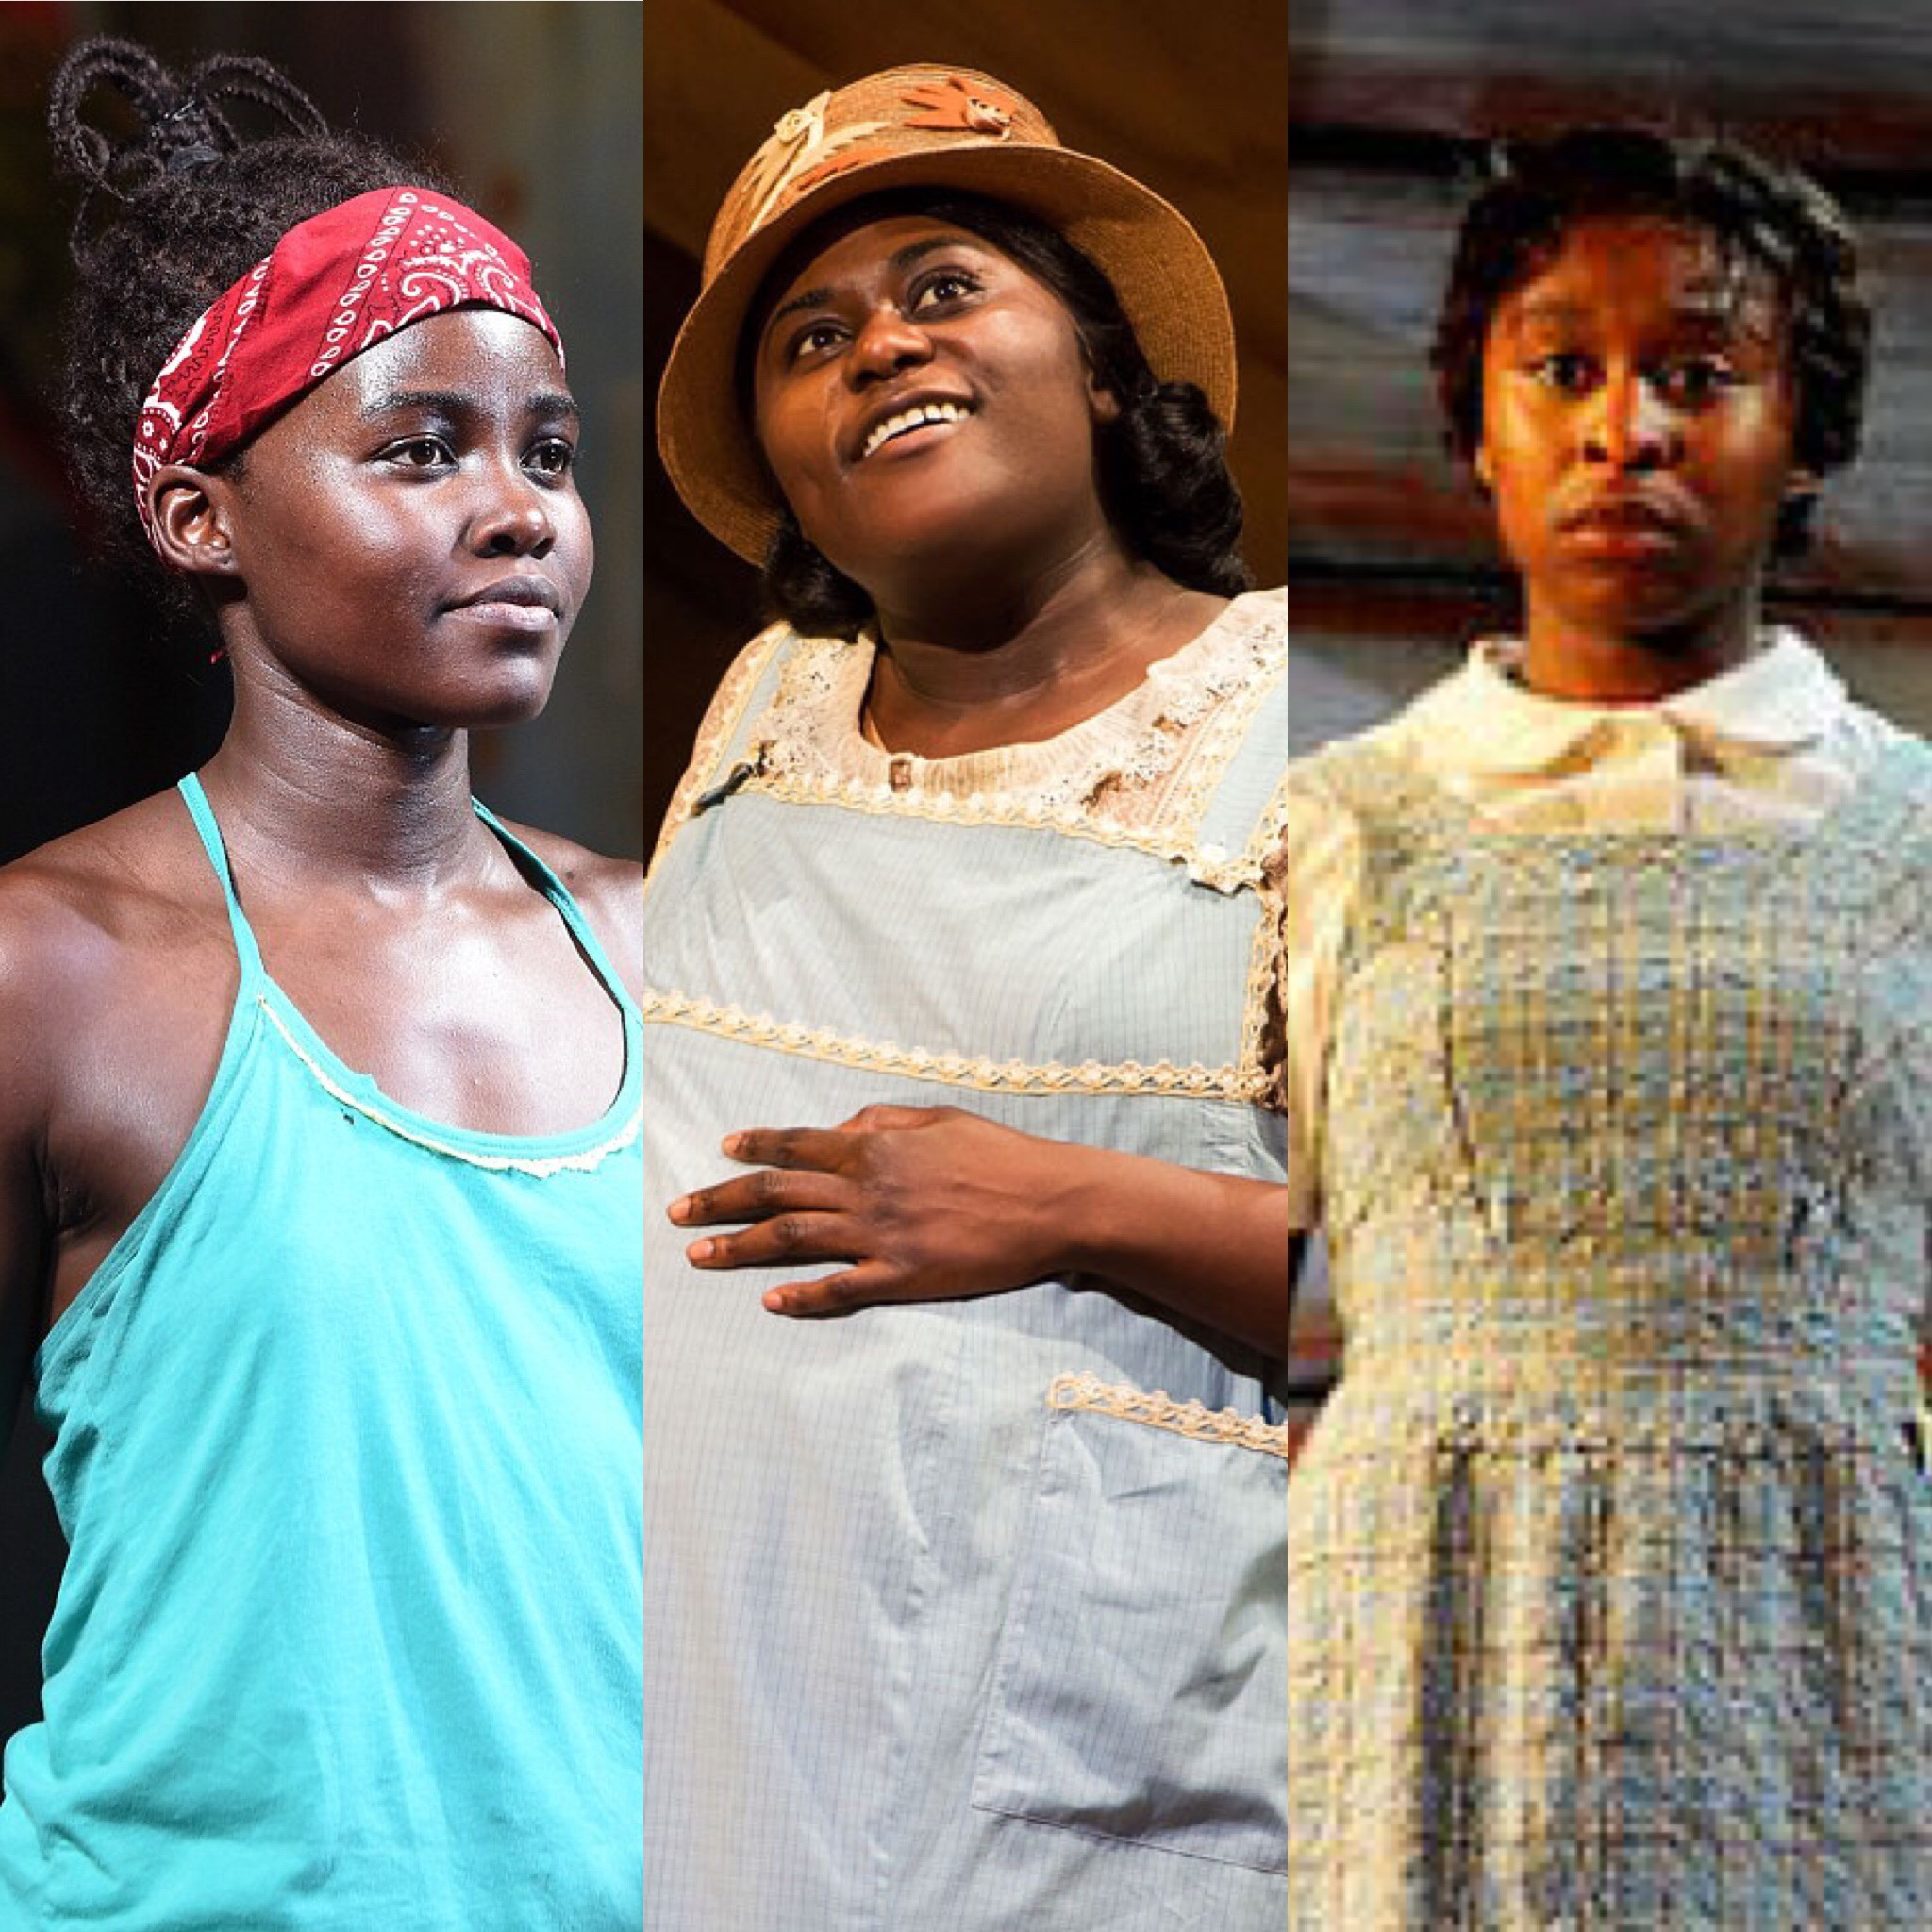 (L-R): Lupita Nyong'o in Eclipsed, Danielle Brooks and Cynthia Erivo in The Color Purple